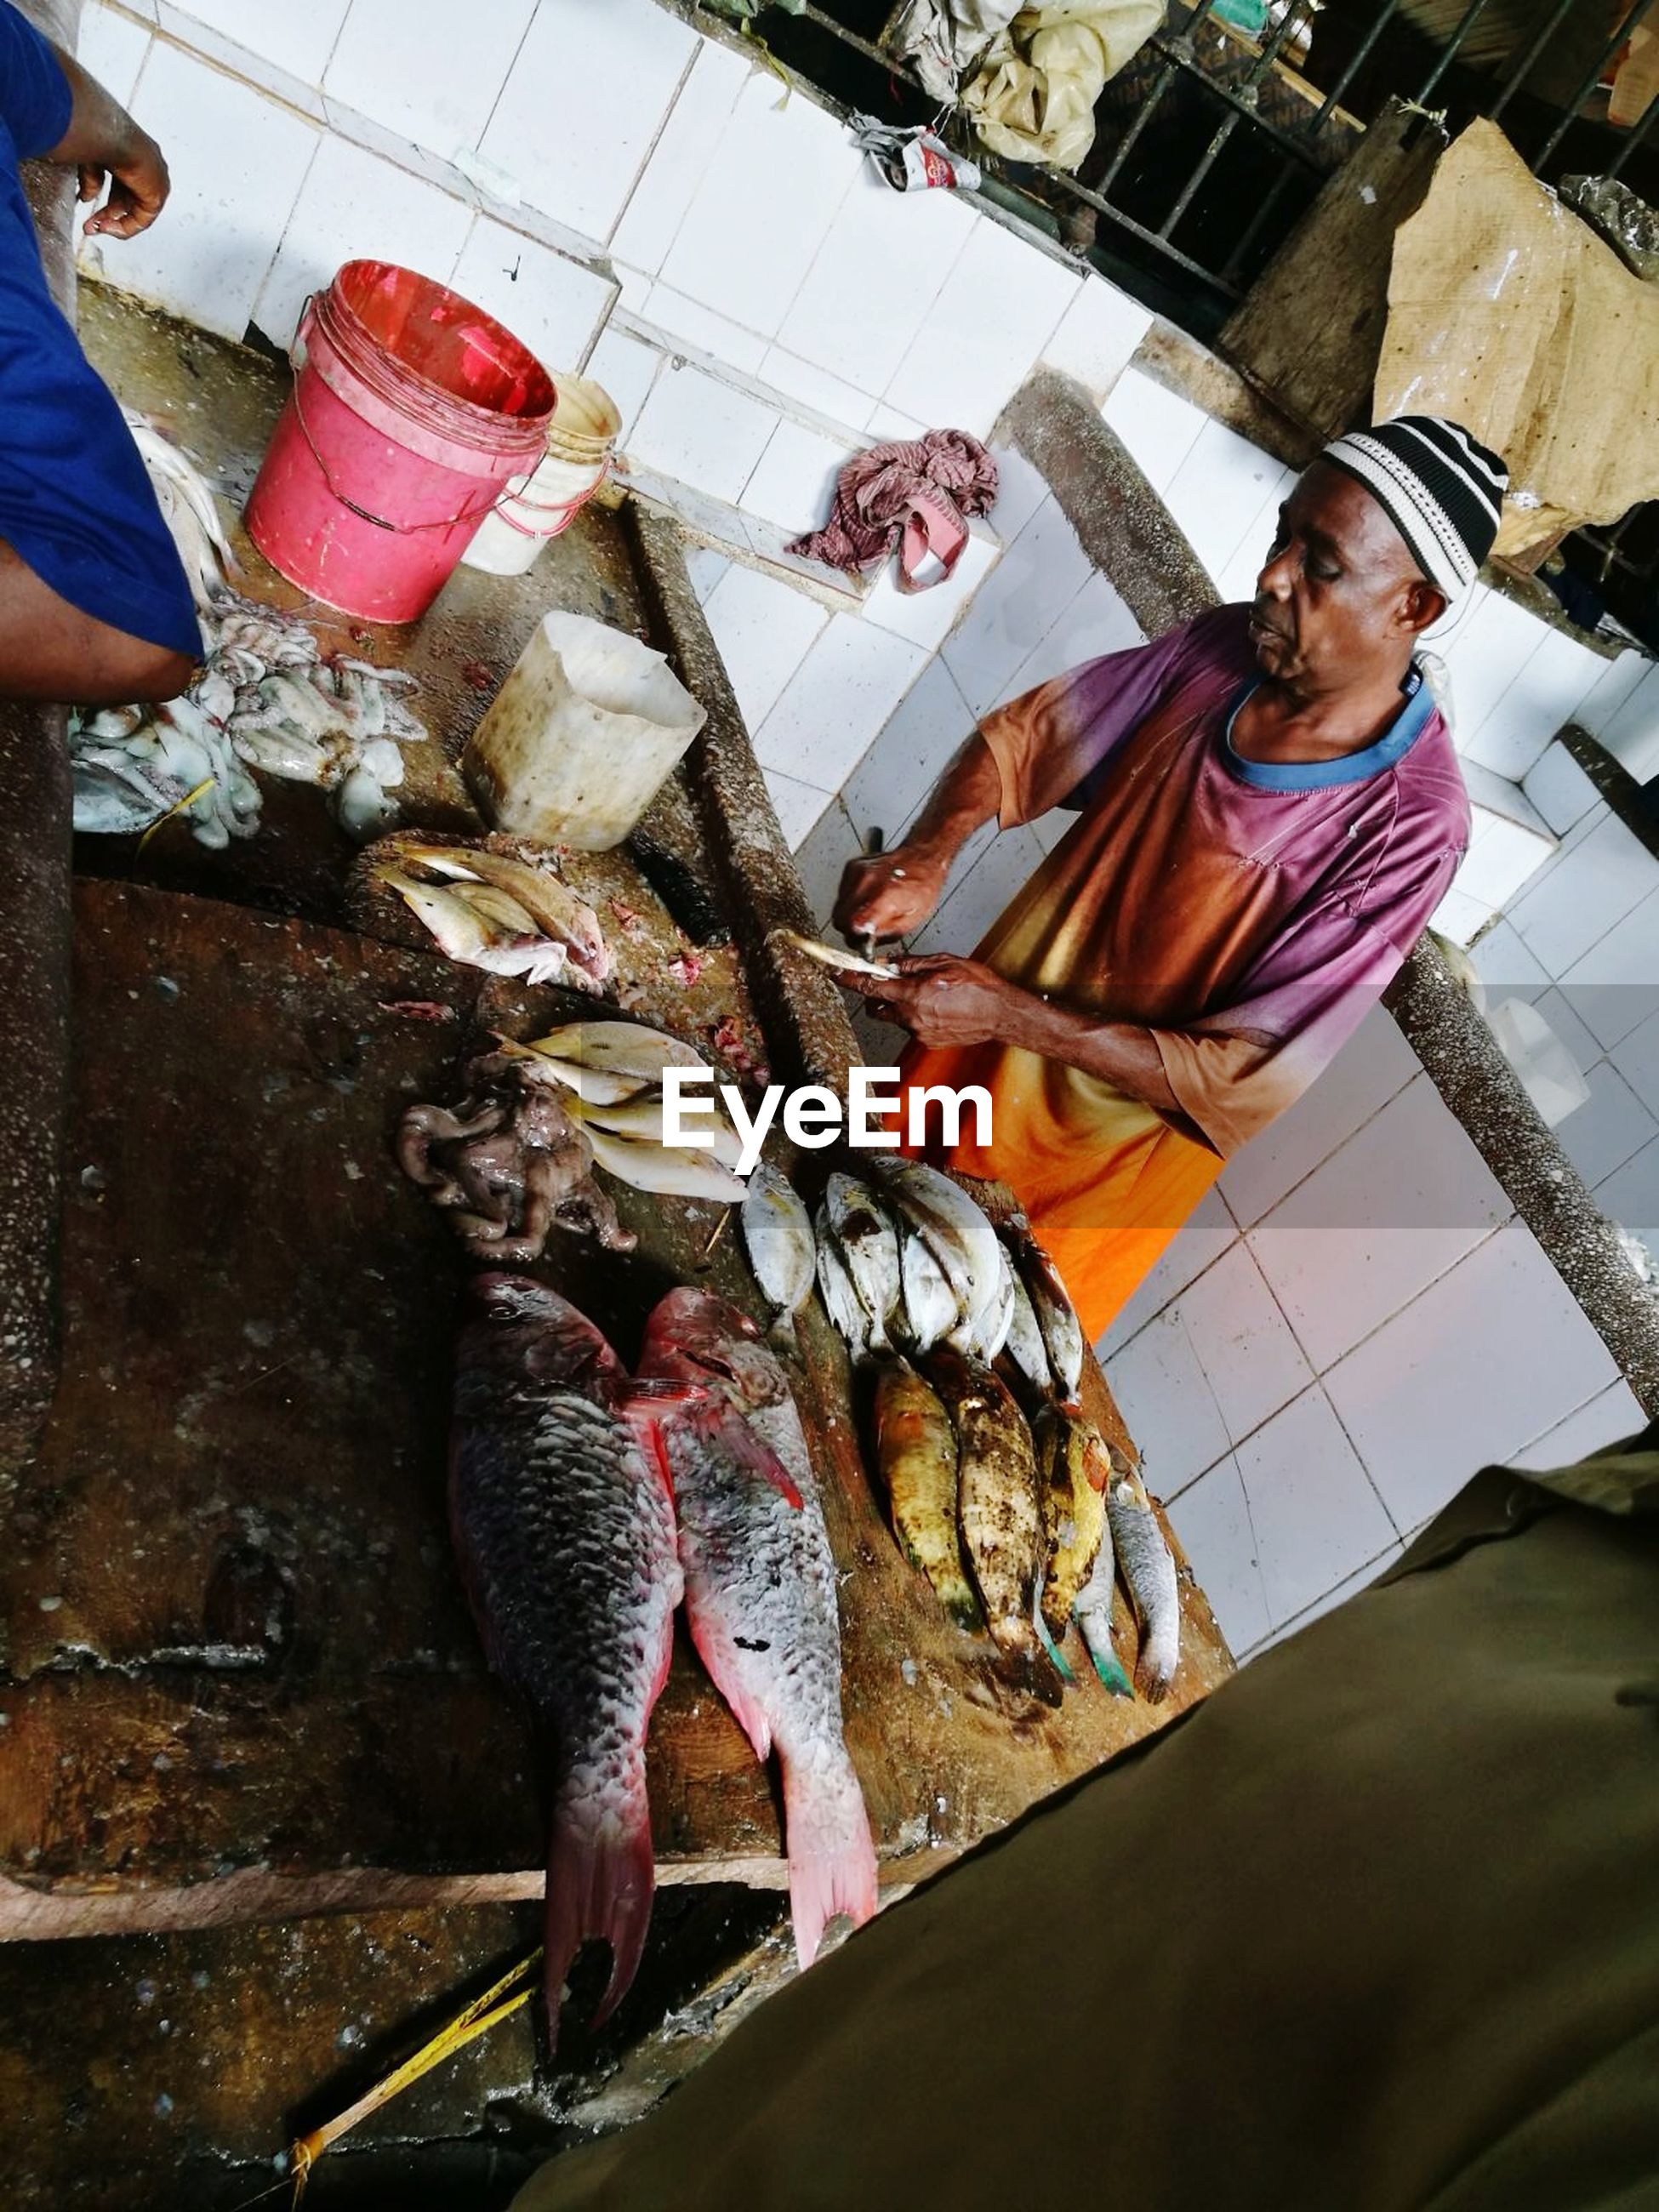 vertebrate, fish, food and drink, food, seafood, one person, freshness, raw food, retail, real people, indoors, healthy eating, wellbeing, market, holding, for sale, preparing food, fish market, catch of fish, fishing industry